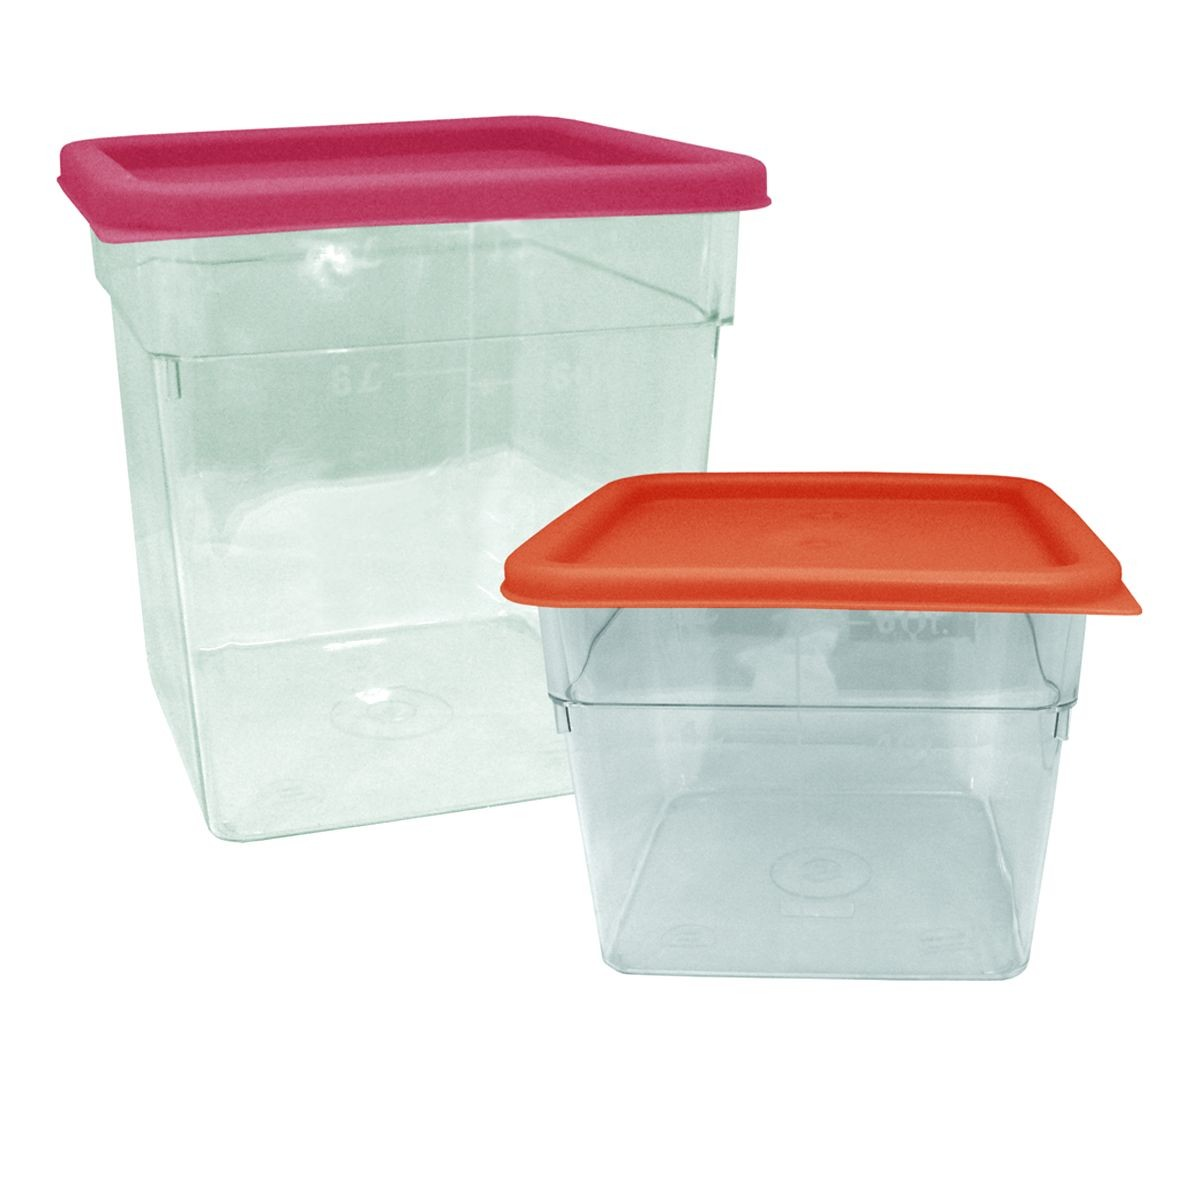 Update International SCQL-SPE Green Polycarbonate 2 to 4 Qt. Square Storage Container Cover